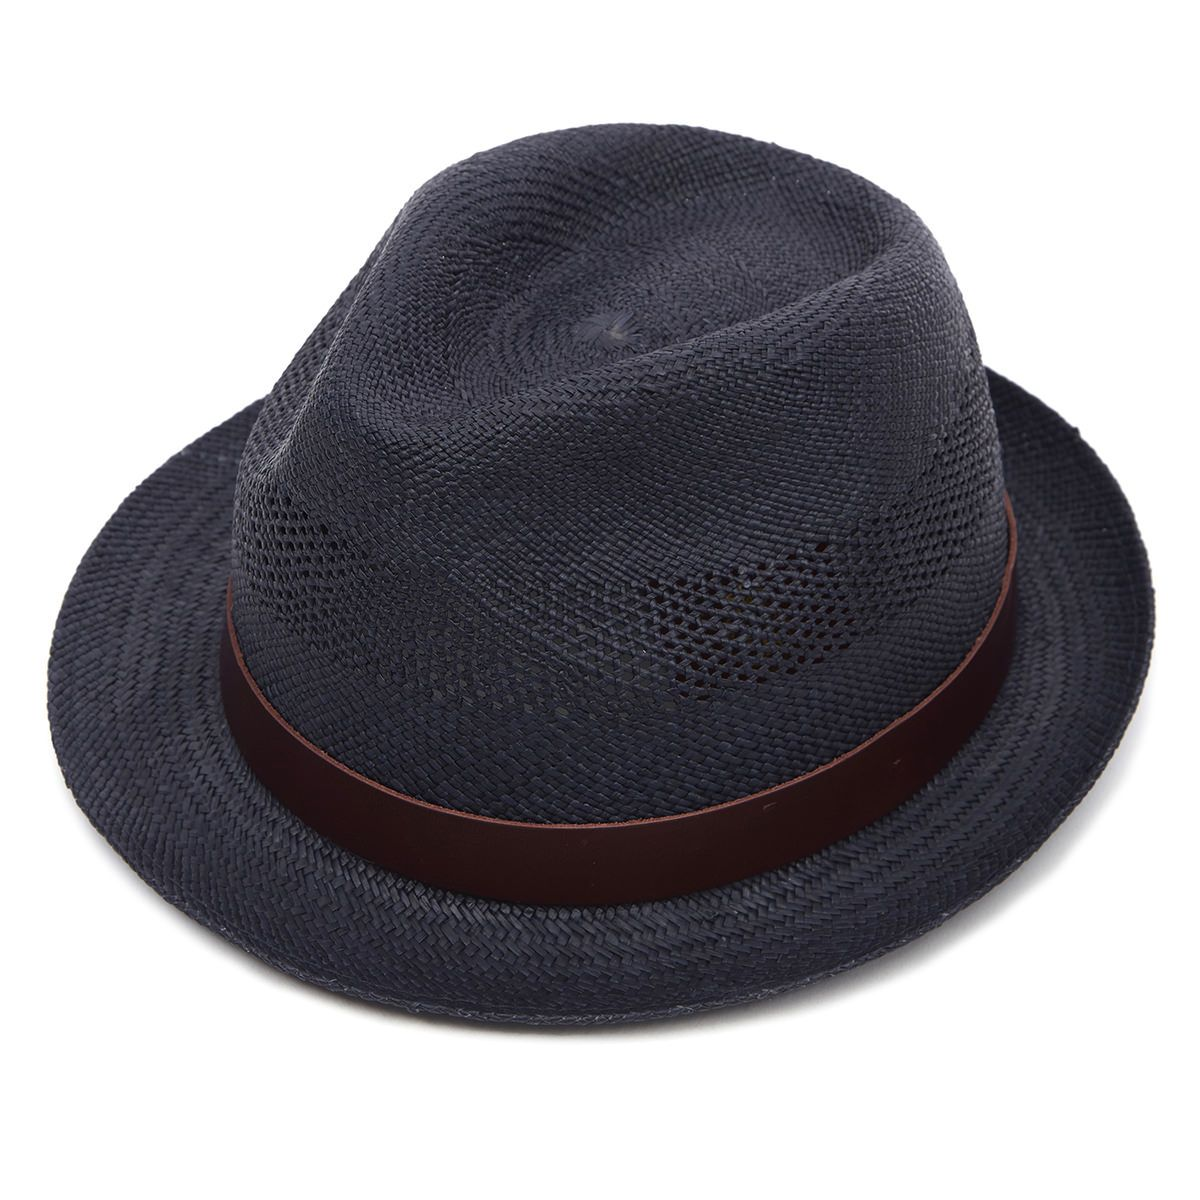 Carnaby Trilby Panama Hat - Navy Perforated 55